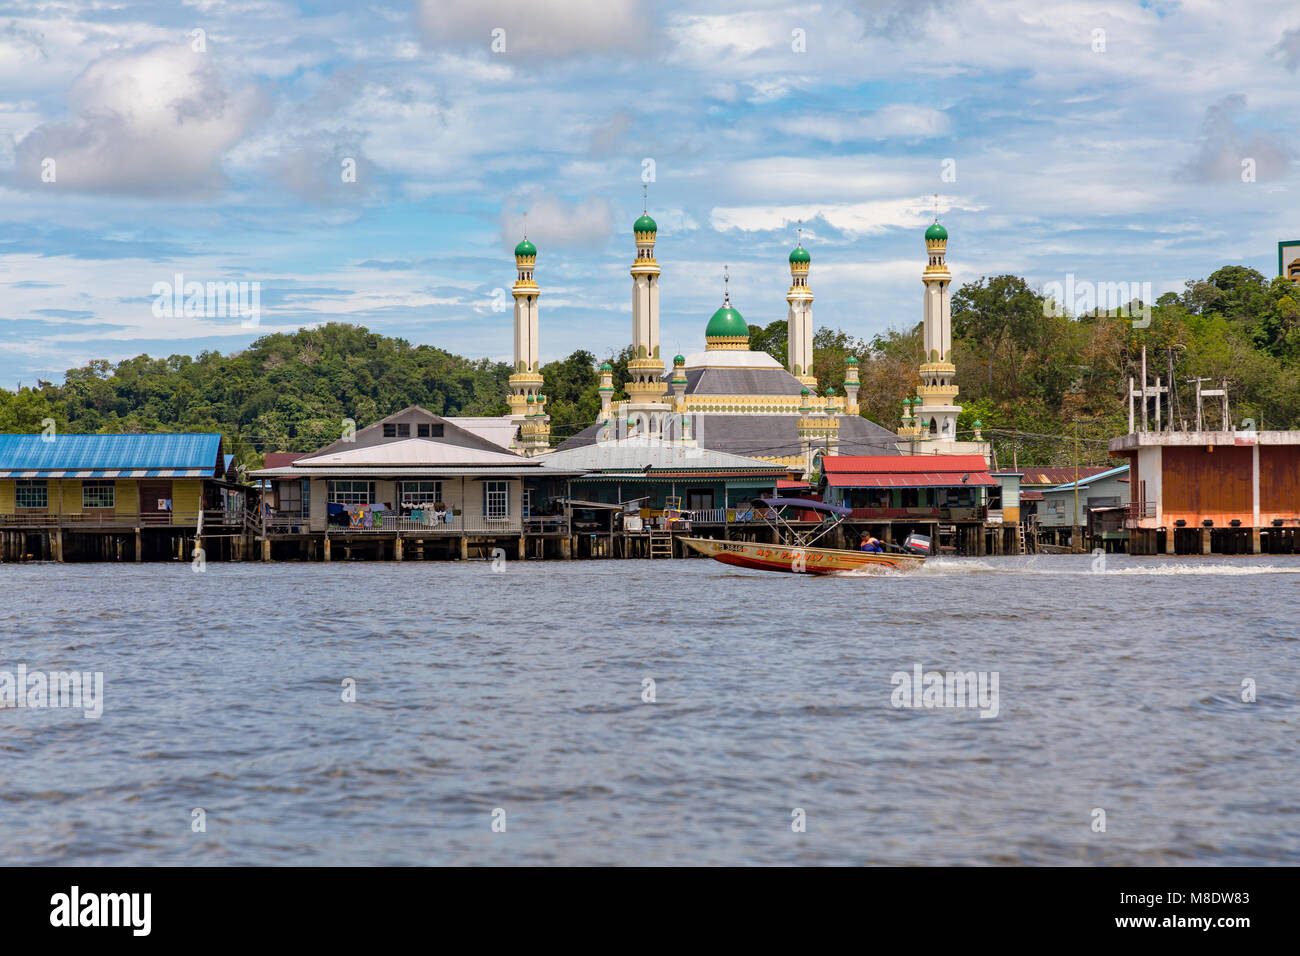 Brunei Darussalam Bandar Seri BegawanWater taxis on the Brunei river, in and around Kampong Ayer, the water village. - Stock Image